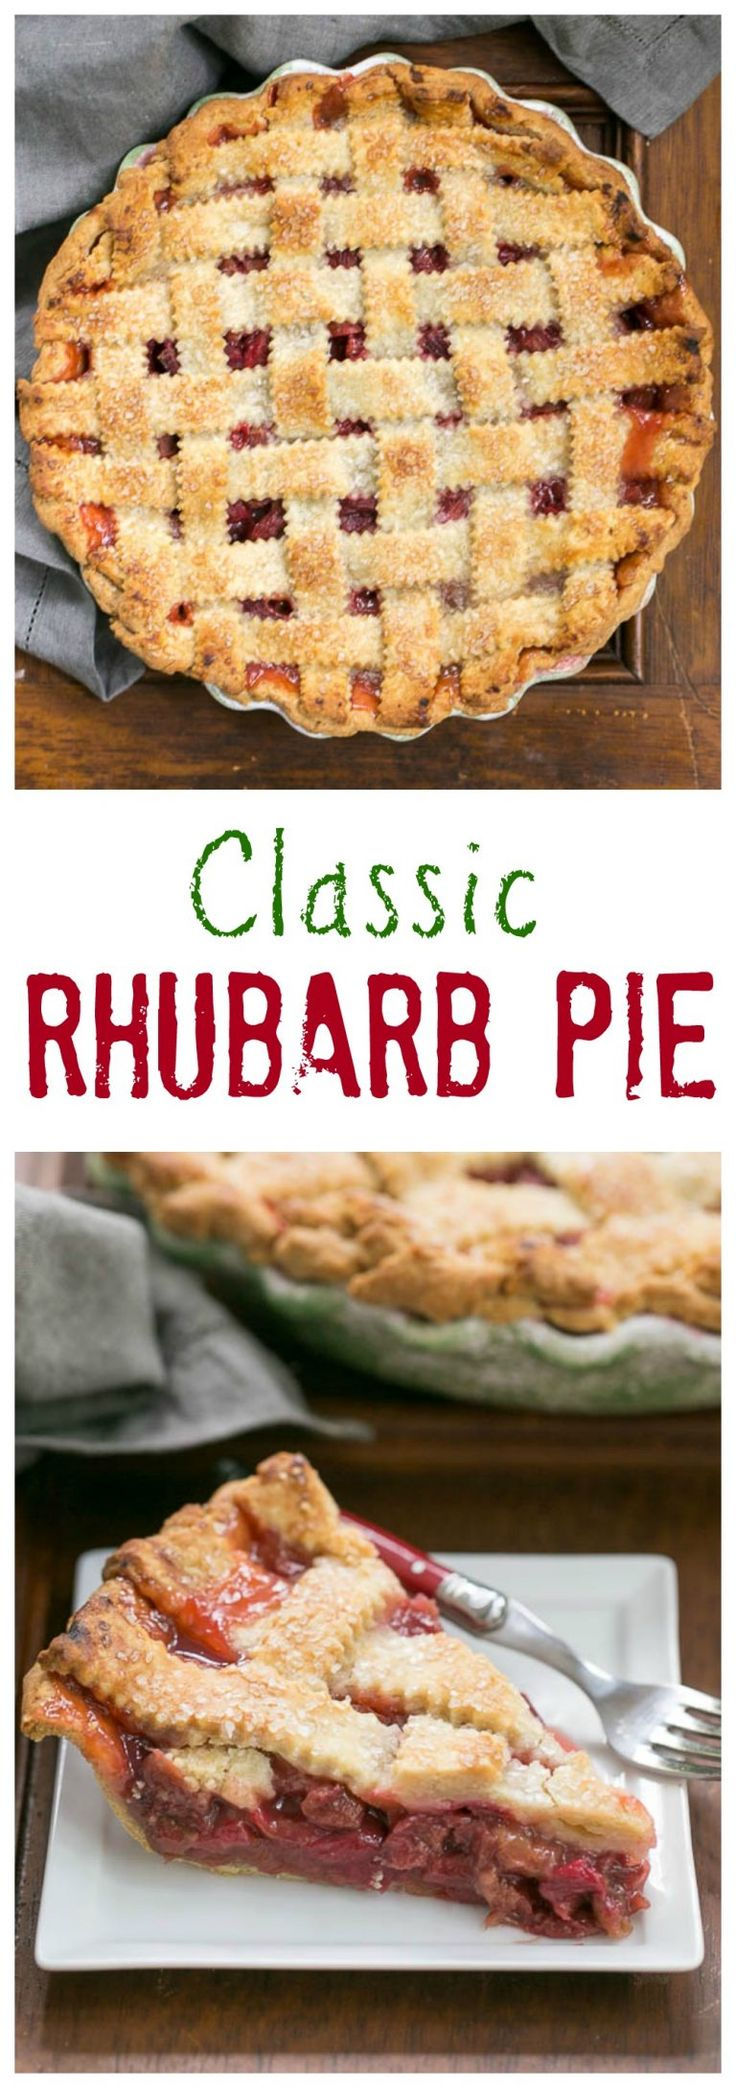 I grew up with a big rhubarb patch in our backyard. On occasion, my mom would surprise us with this Classic Rhubarb Pie. Double crust, no custard, just plain delicious!